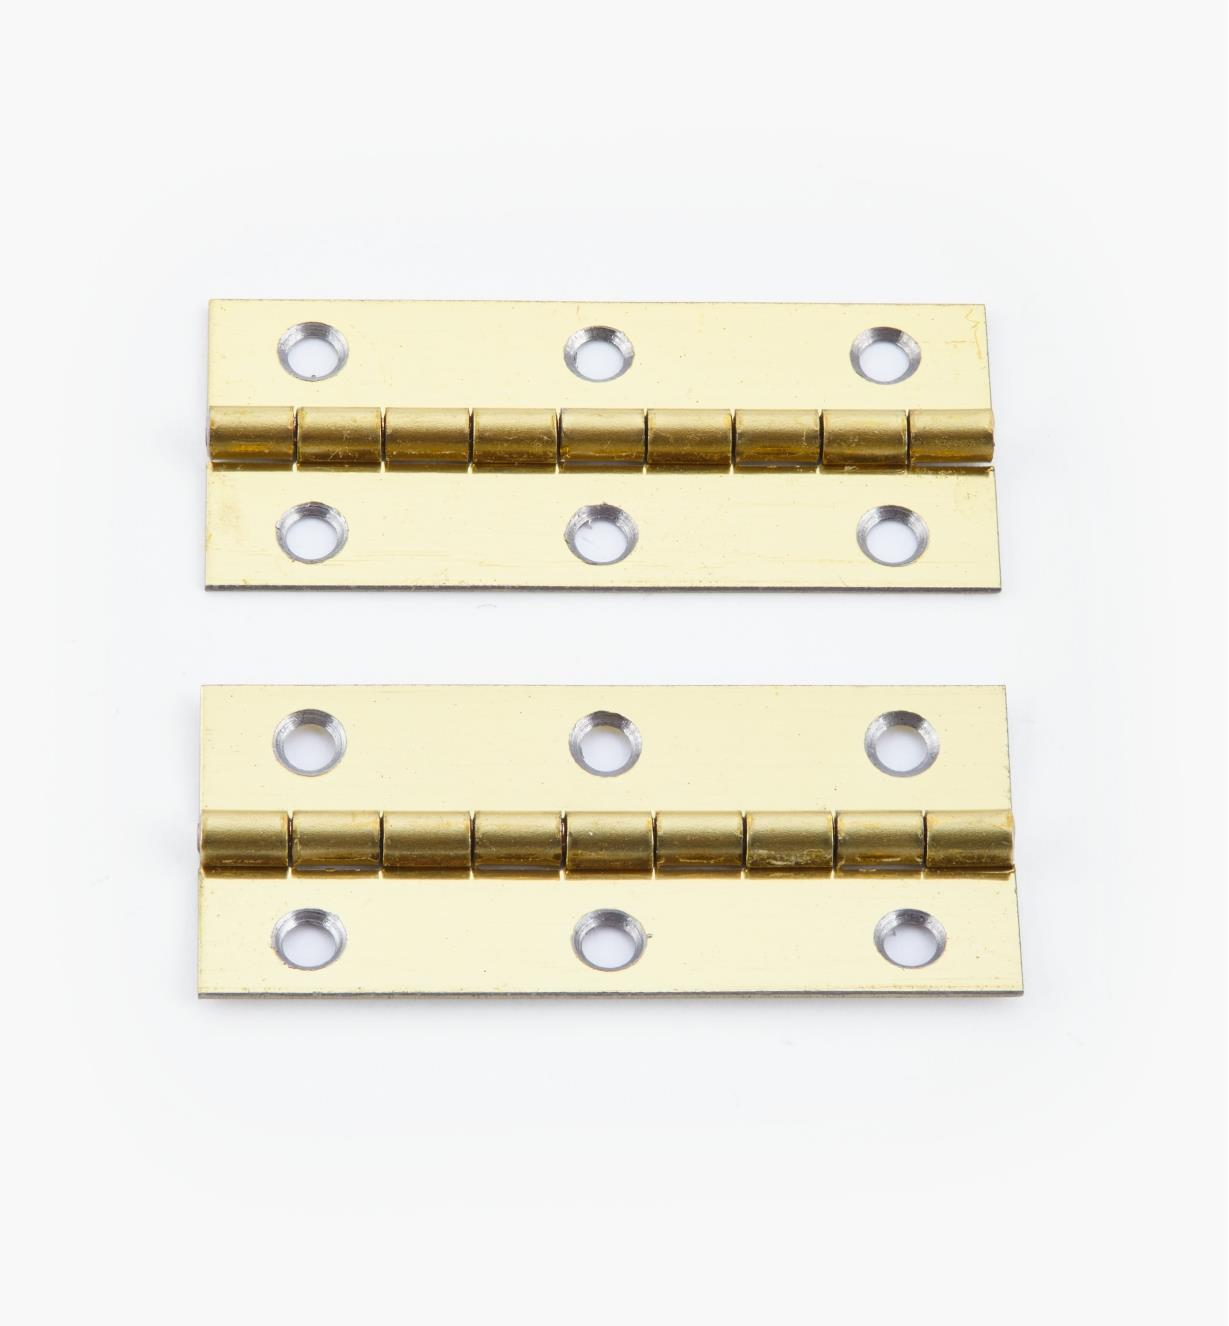 00D3014 - 45mm x 20mm Small Box Hinges, pr.